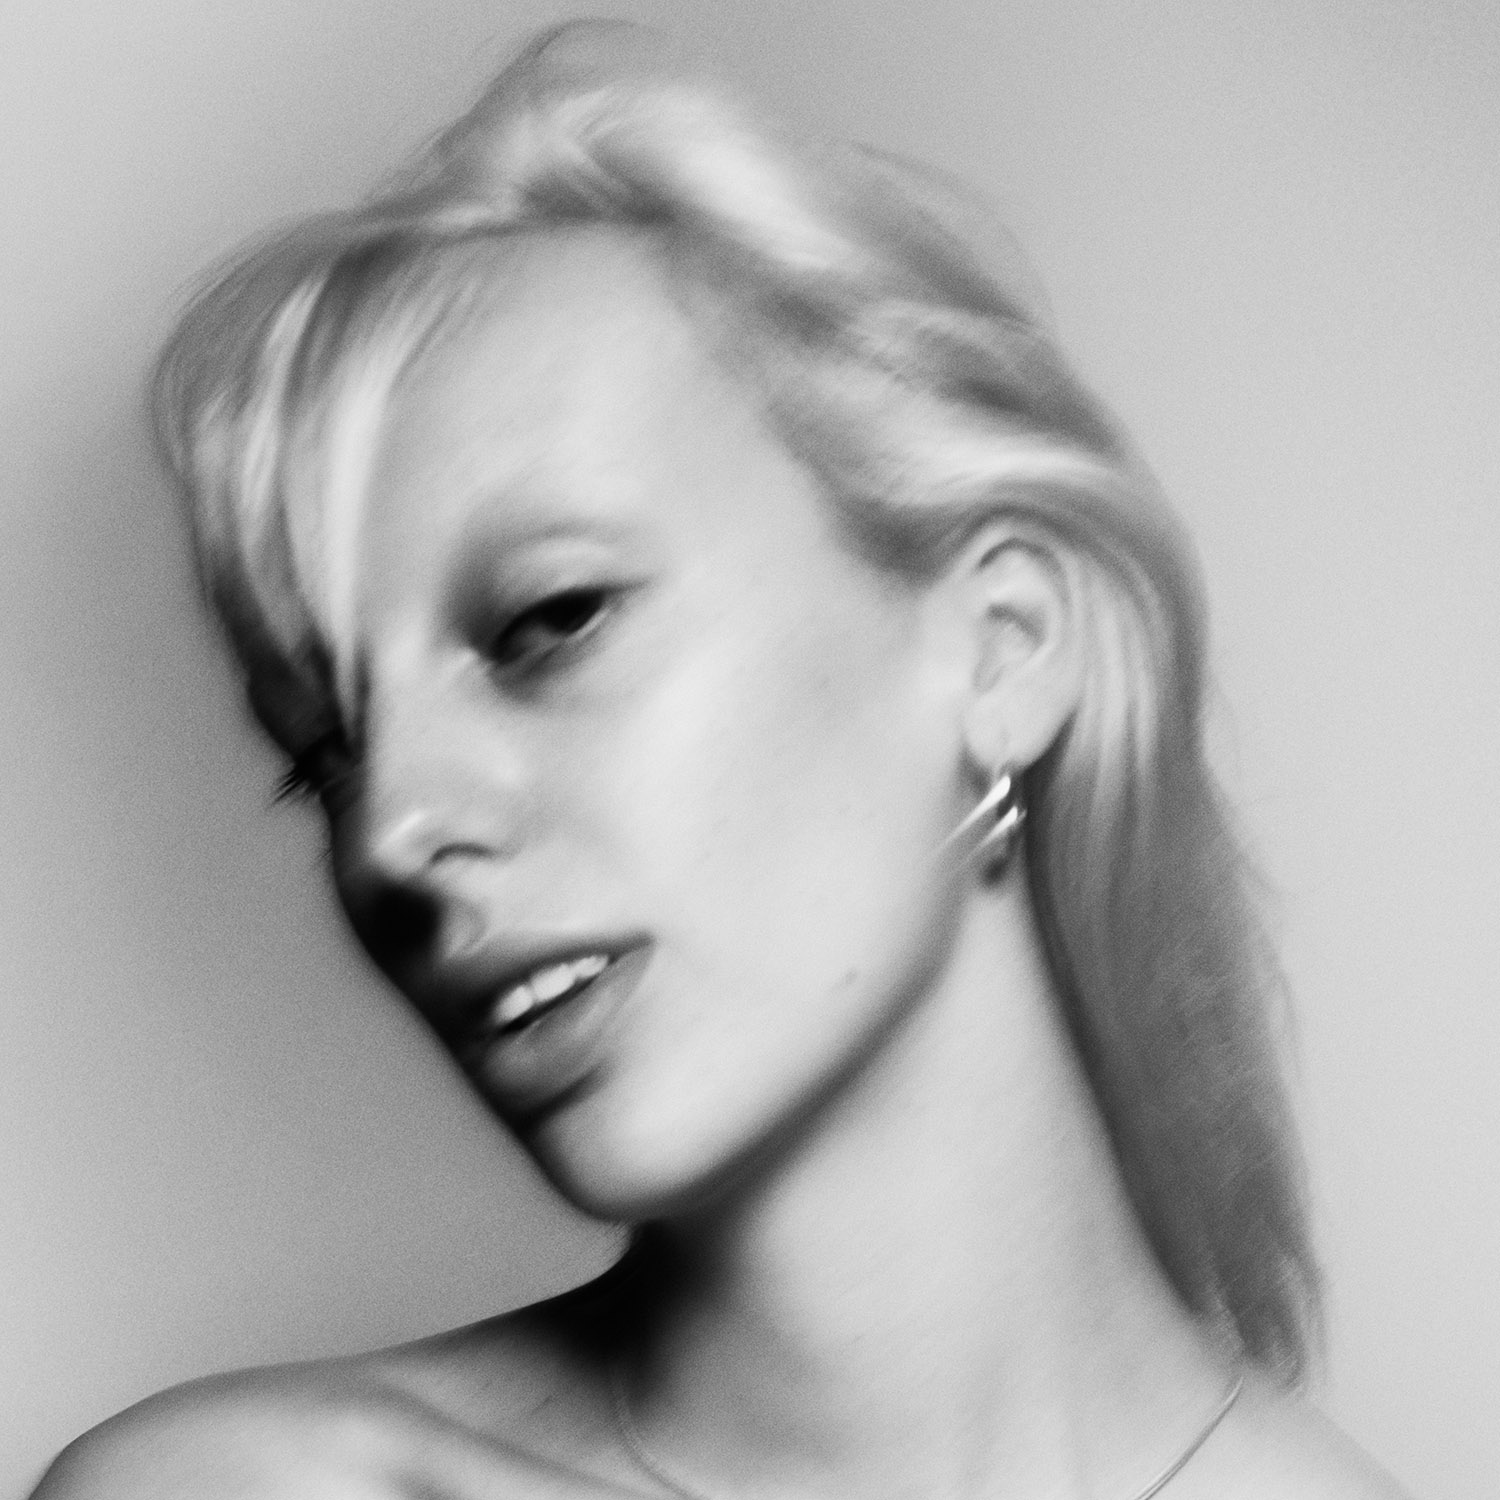 'Don't be a dickhead': Lili Sumner on her fears, ambitions, and one favor she'd like to ask